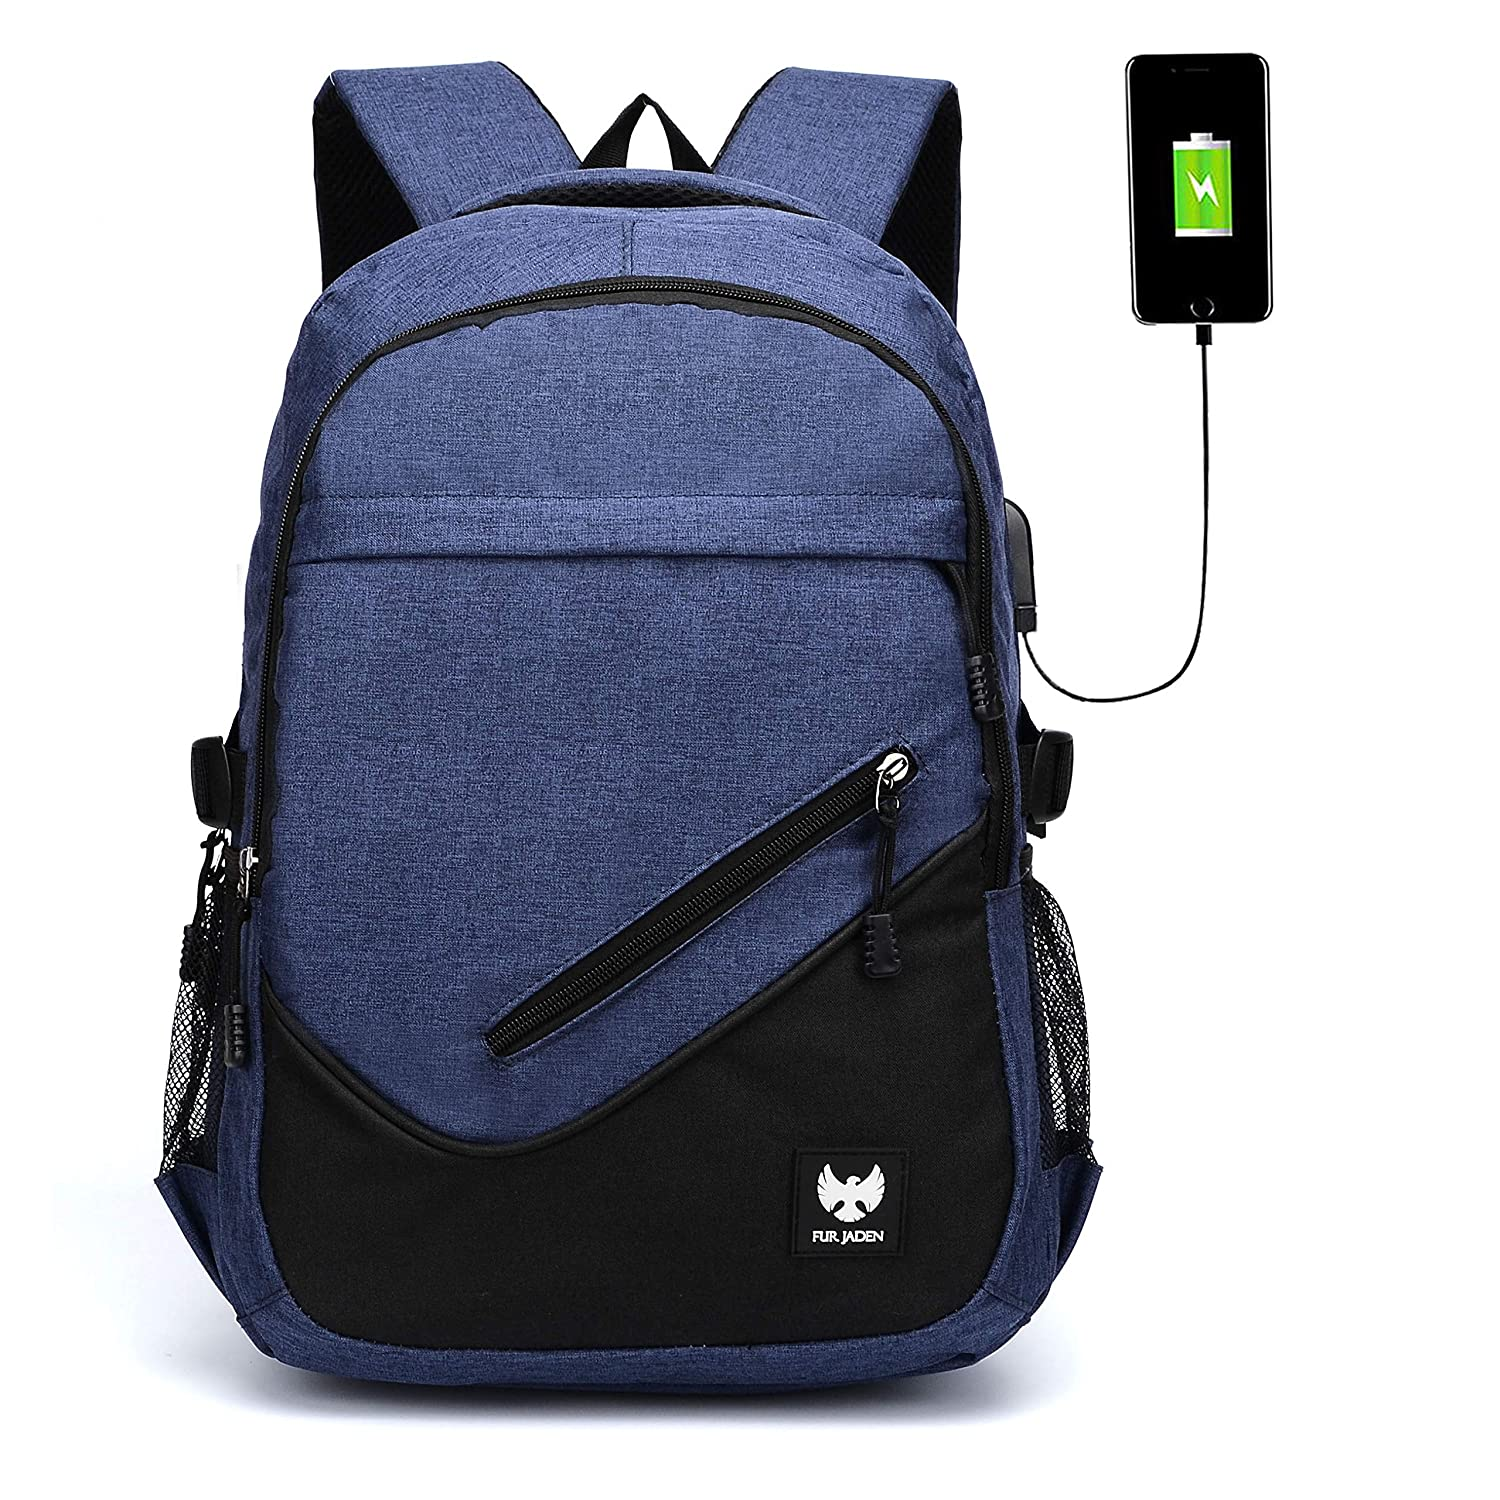 Fur Jaden 25L Navy Casual Backpack With USB Charging Port